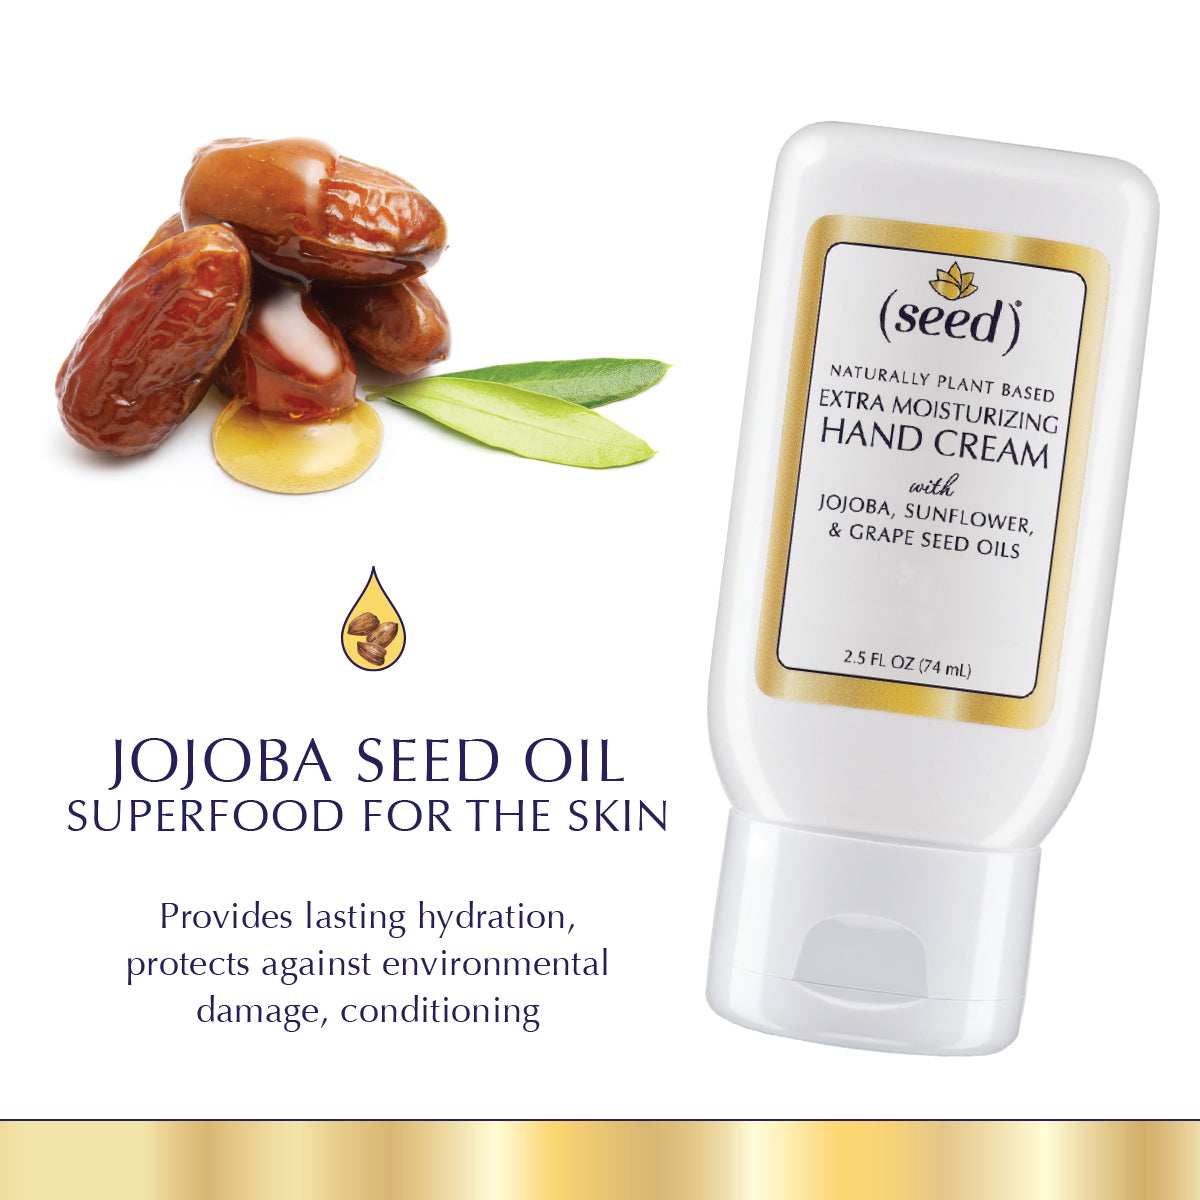 Seed Extra Moisturizing Hand Cream features jojoba seed oil, a superfood for your skin